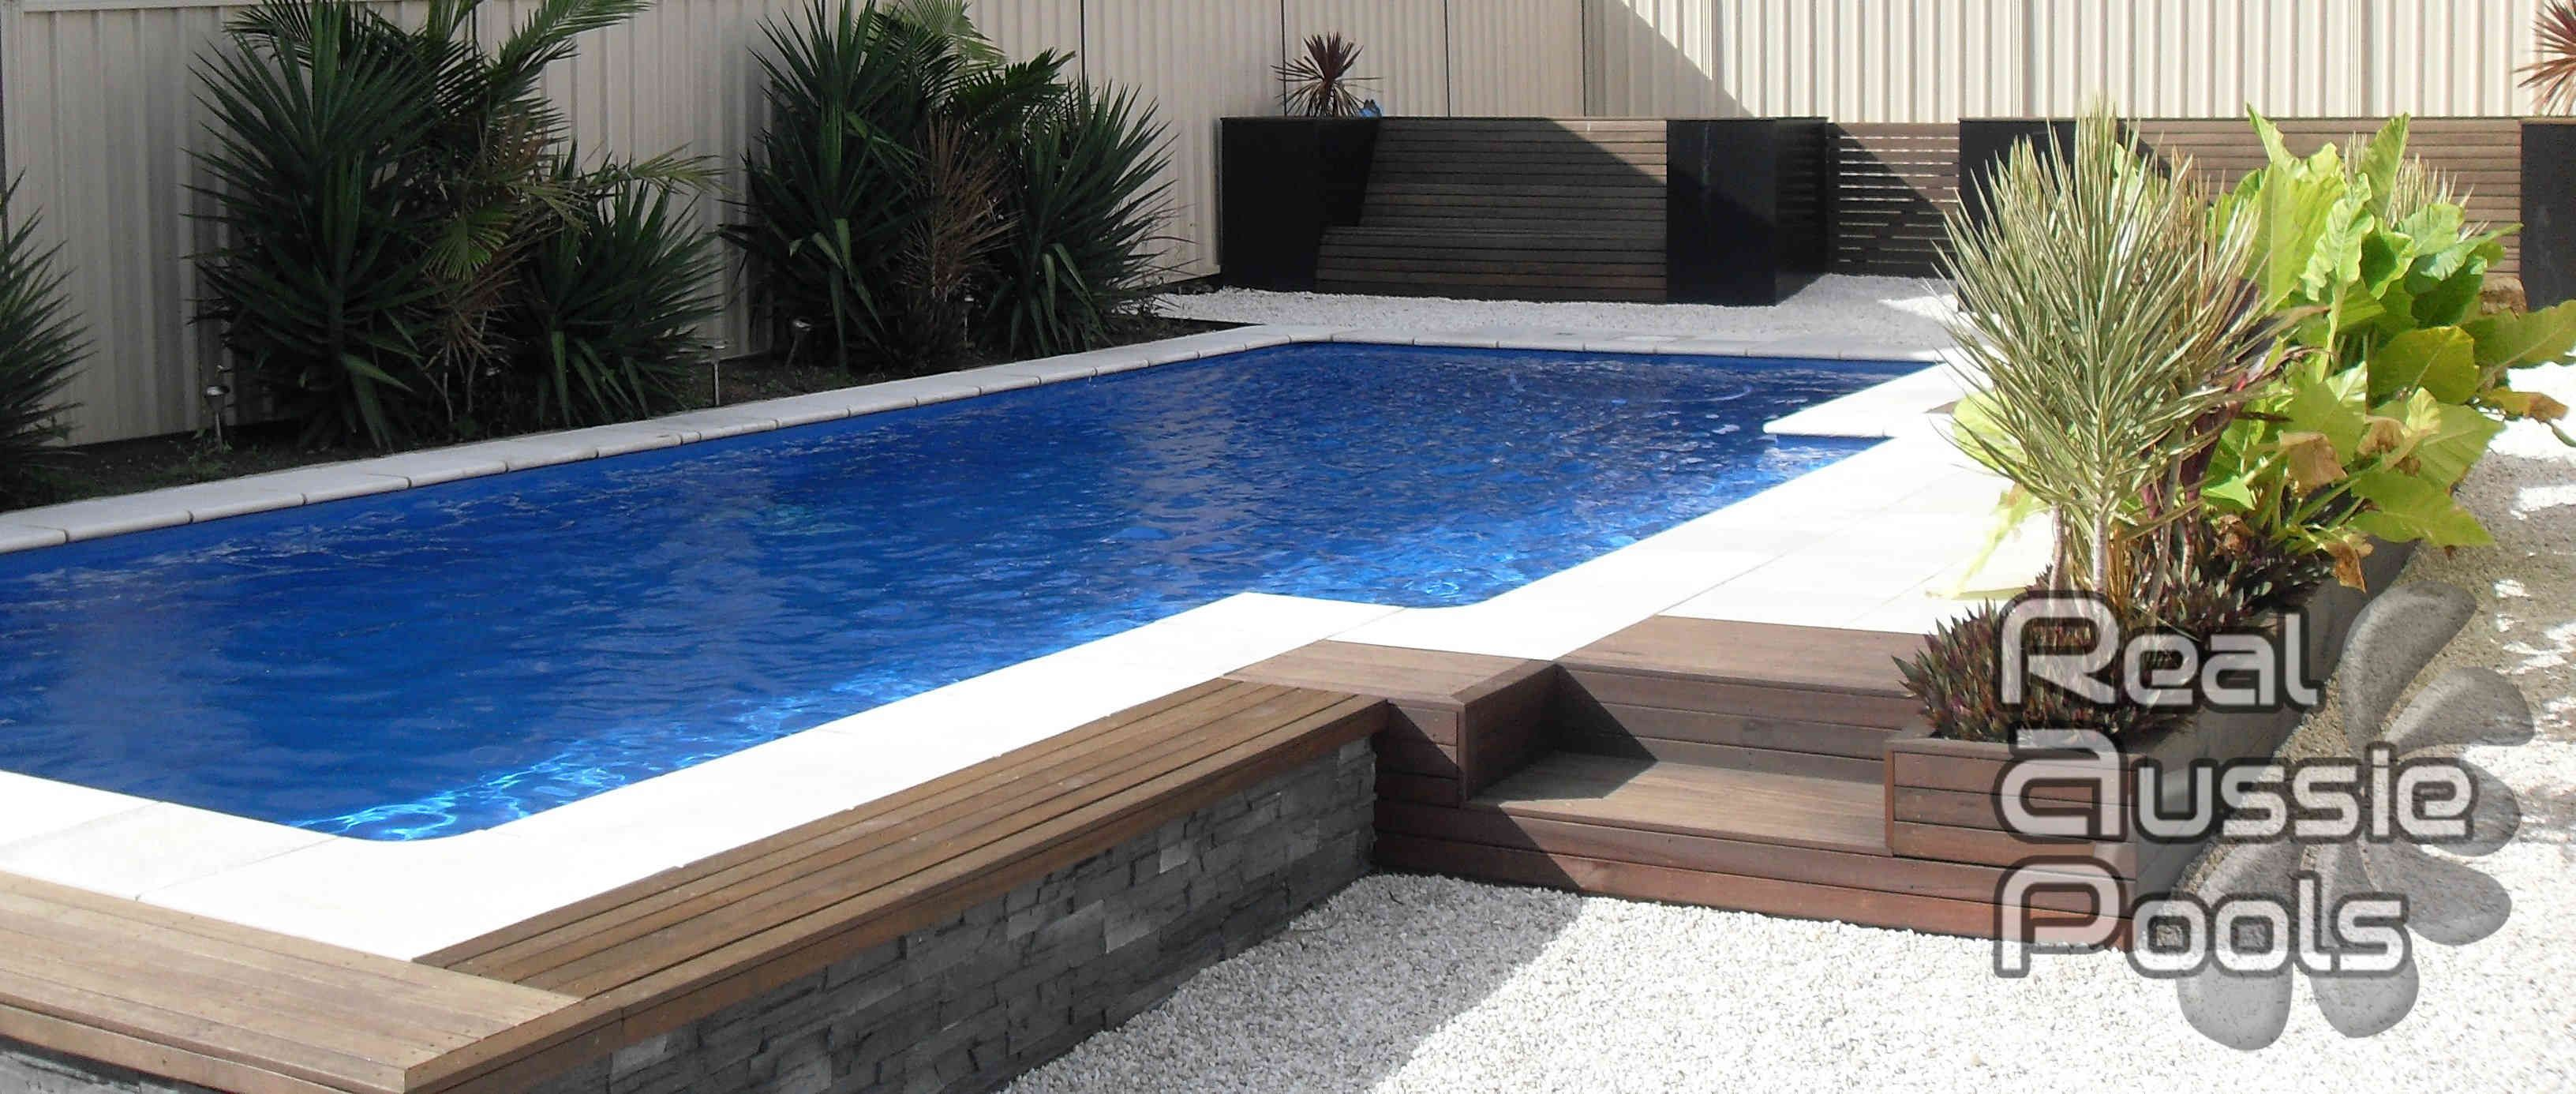 fibreglass permanent pool with stone materials pool frame and fresh plant decorating also minimalist wooden pool side for above ground plunge pool design